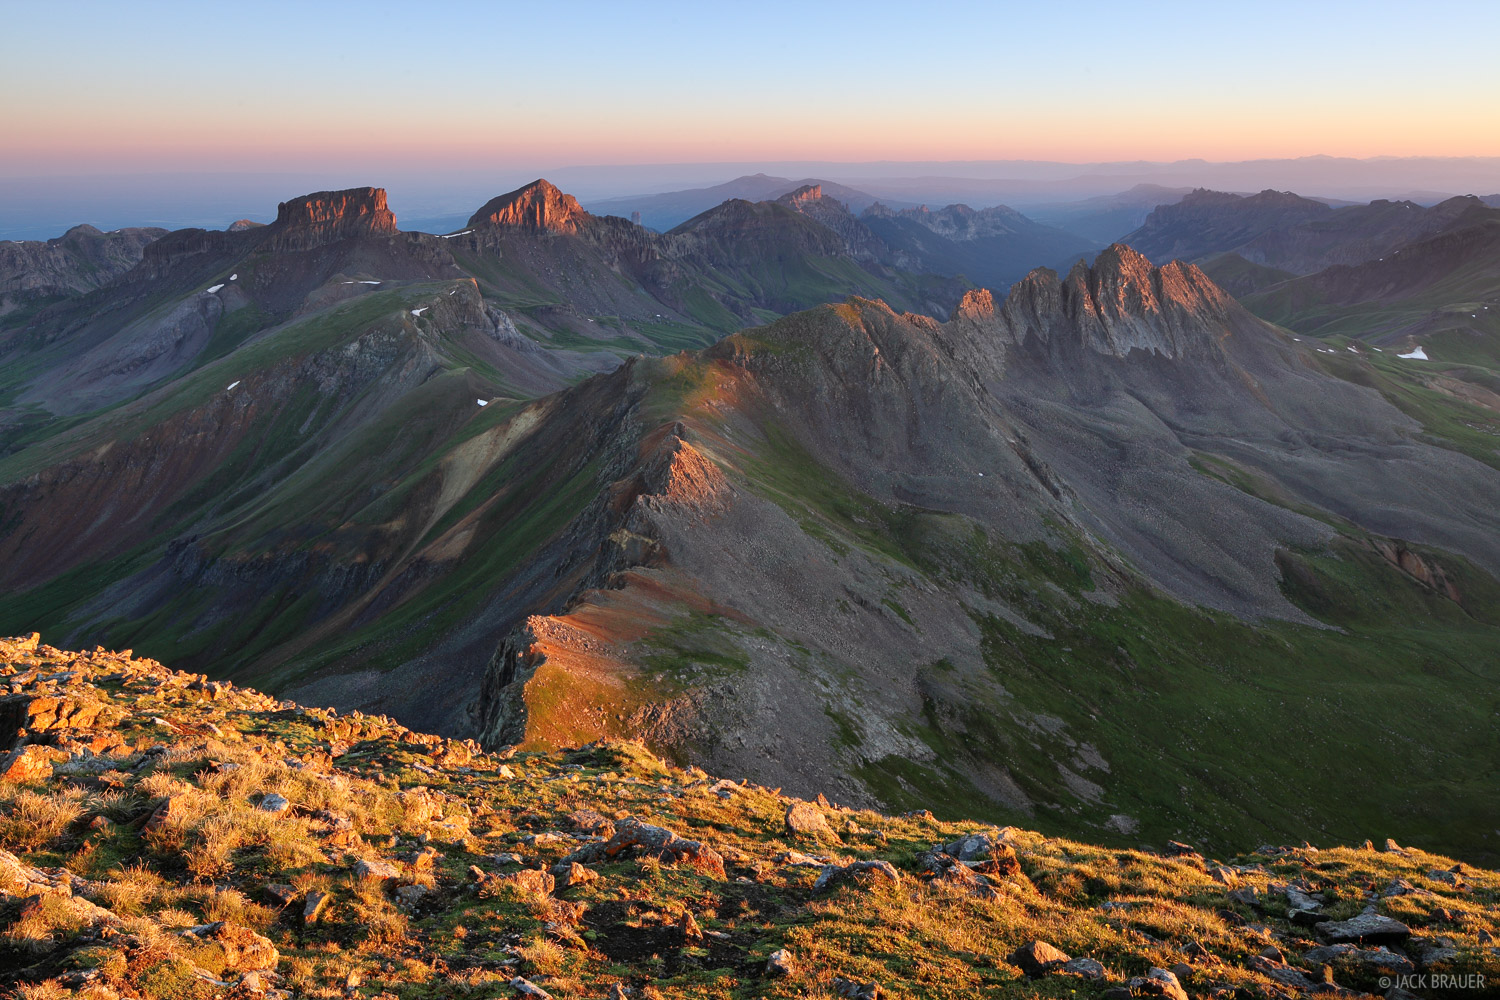 Sunrise alpenglow illuminates the peaks of the Cimarron Range, as seen from the summit of Wetterhorn Peak, 14,015 ft.  ...